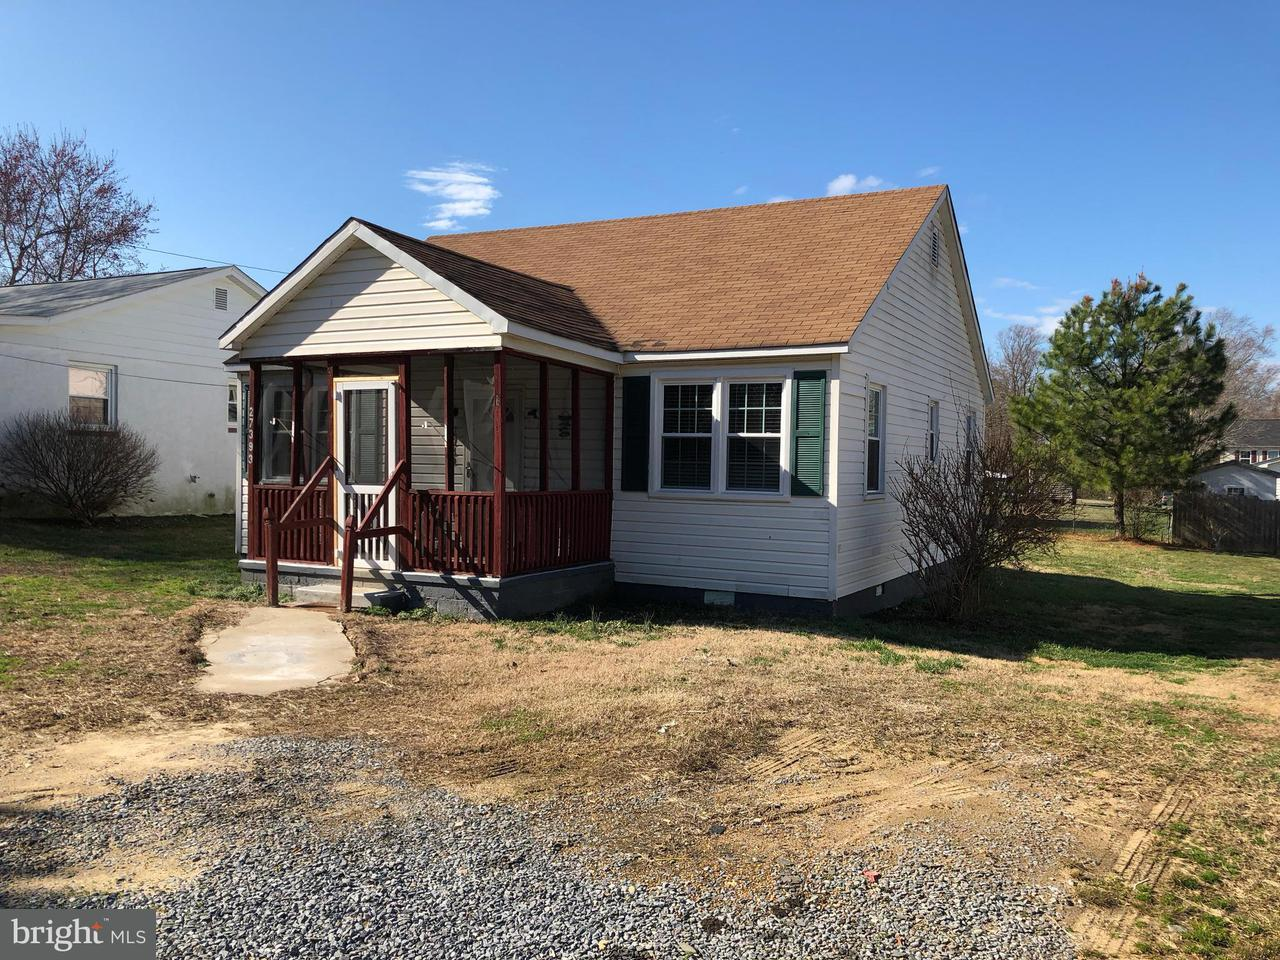 Other Residential for Rent at 27393 N Sandgates Rd Mechanicsville, Maryland 20659 United States